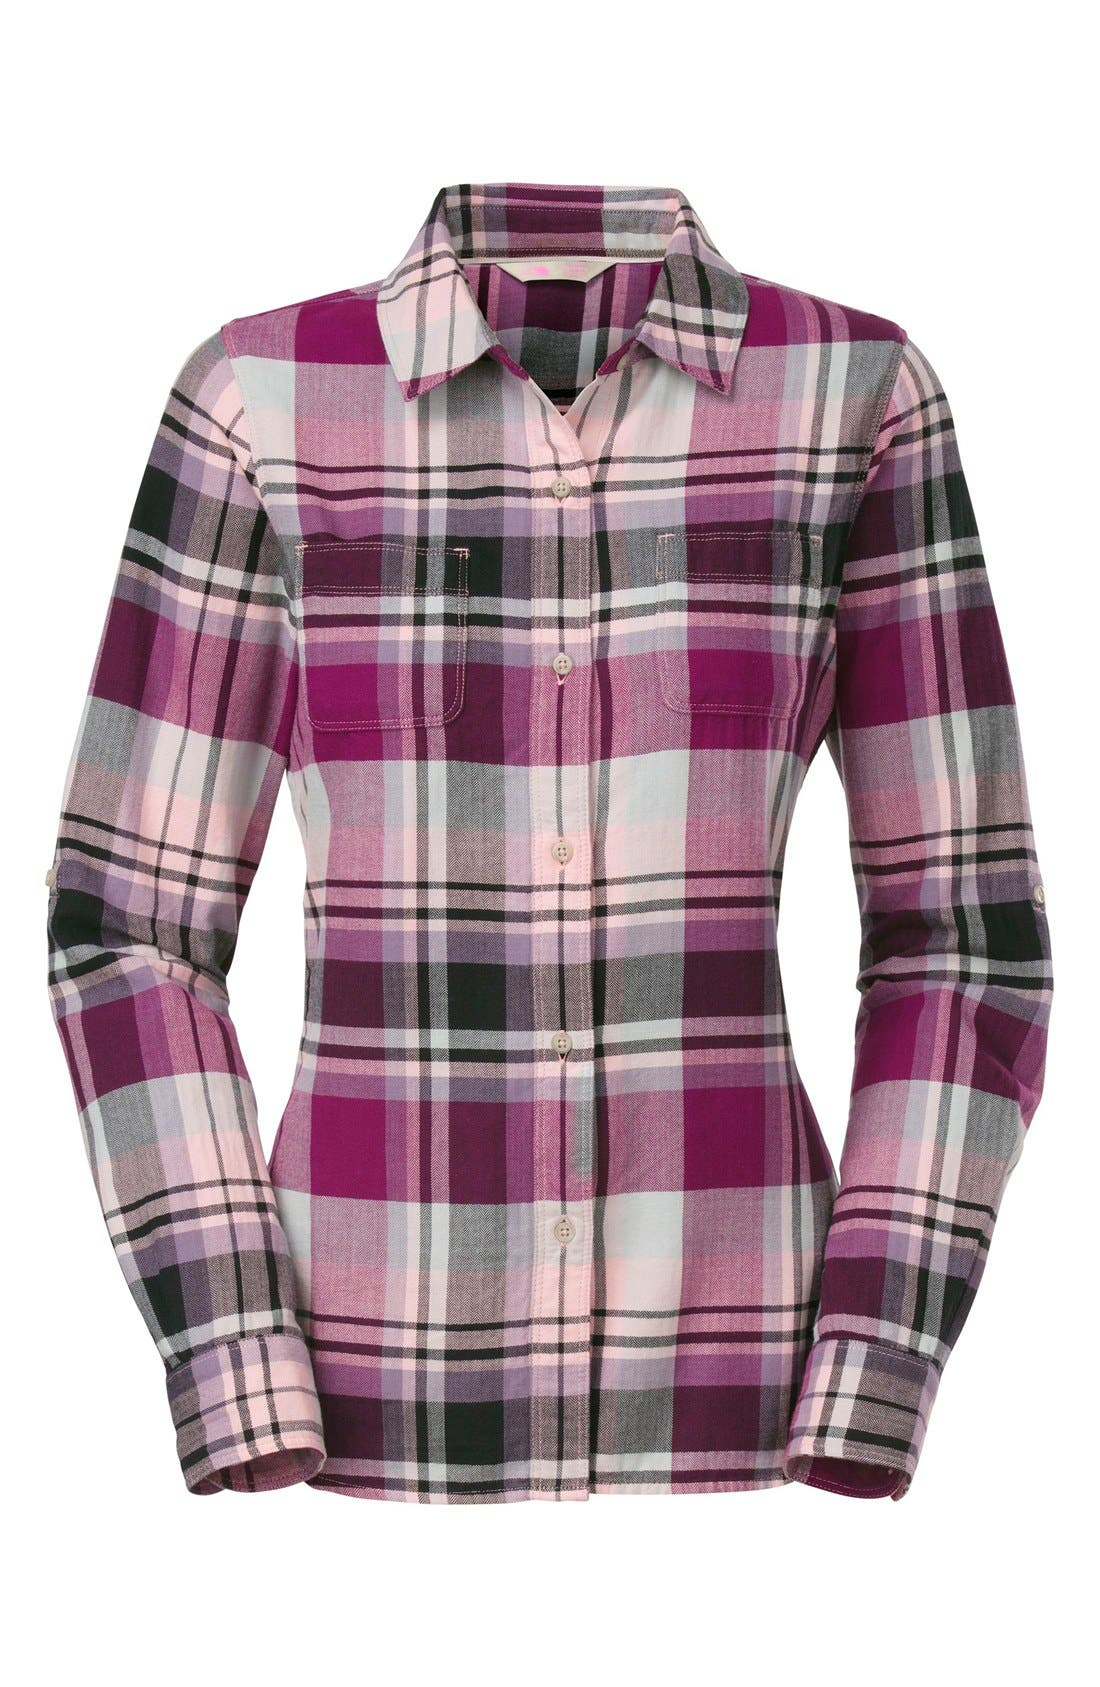 Alternate Image 1 Selected - The North Face 'Pomeria' Plaid Flannel Shirt